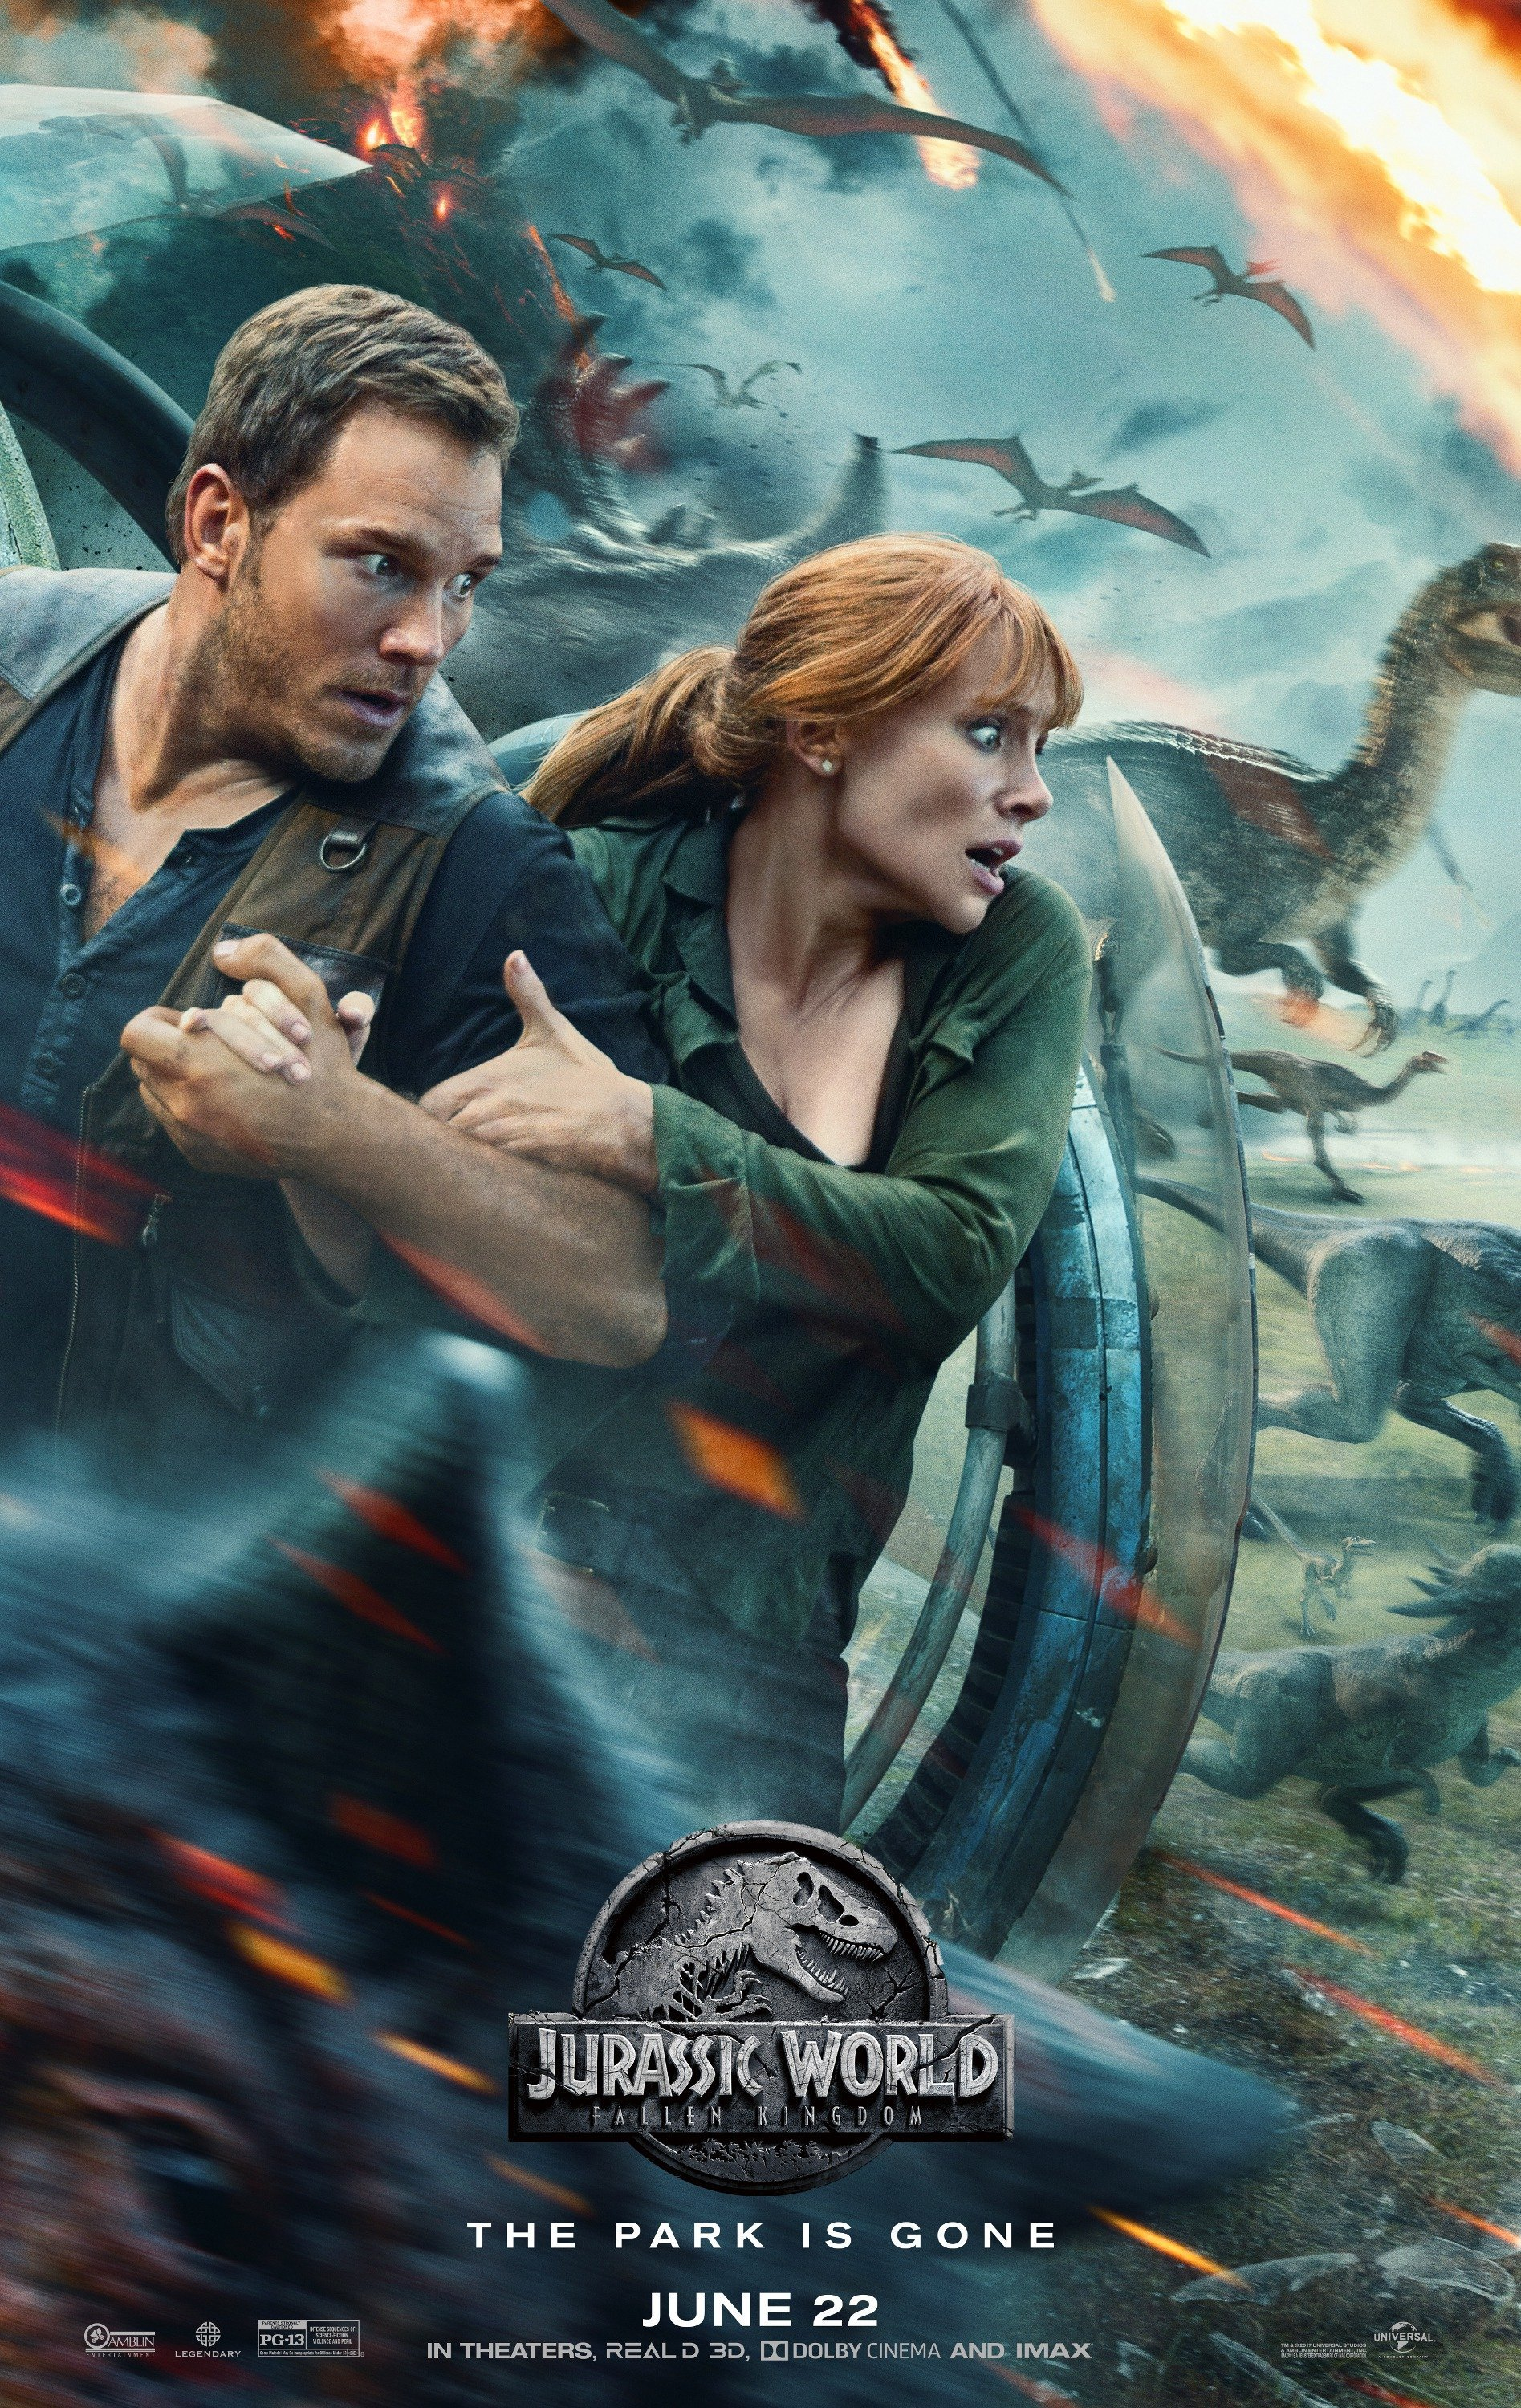 Poster of Jurassic World: Fallen Kingdom 3D